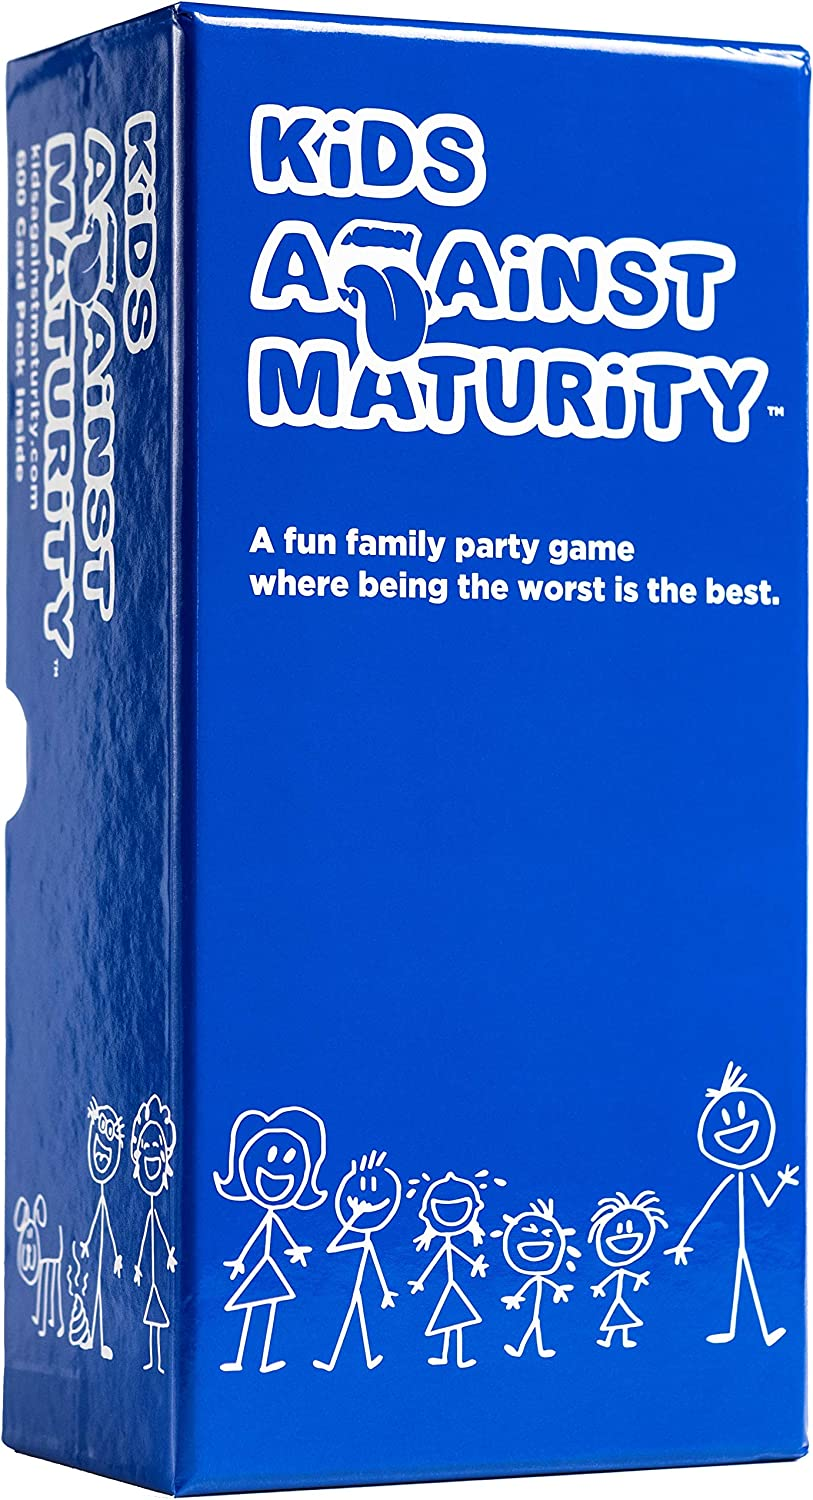 Amazon.com: Kids Against Maturity: Card Game for Kids and Families, Super Fun Hilarious for Family Party Game Night : Toys & Games